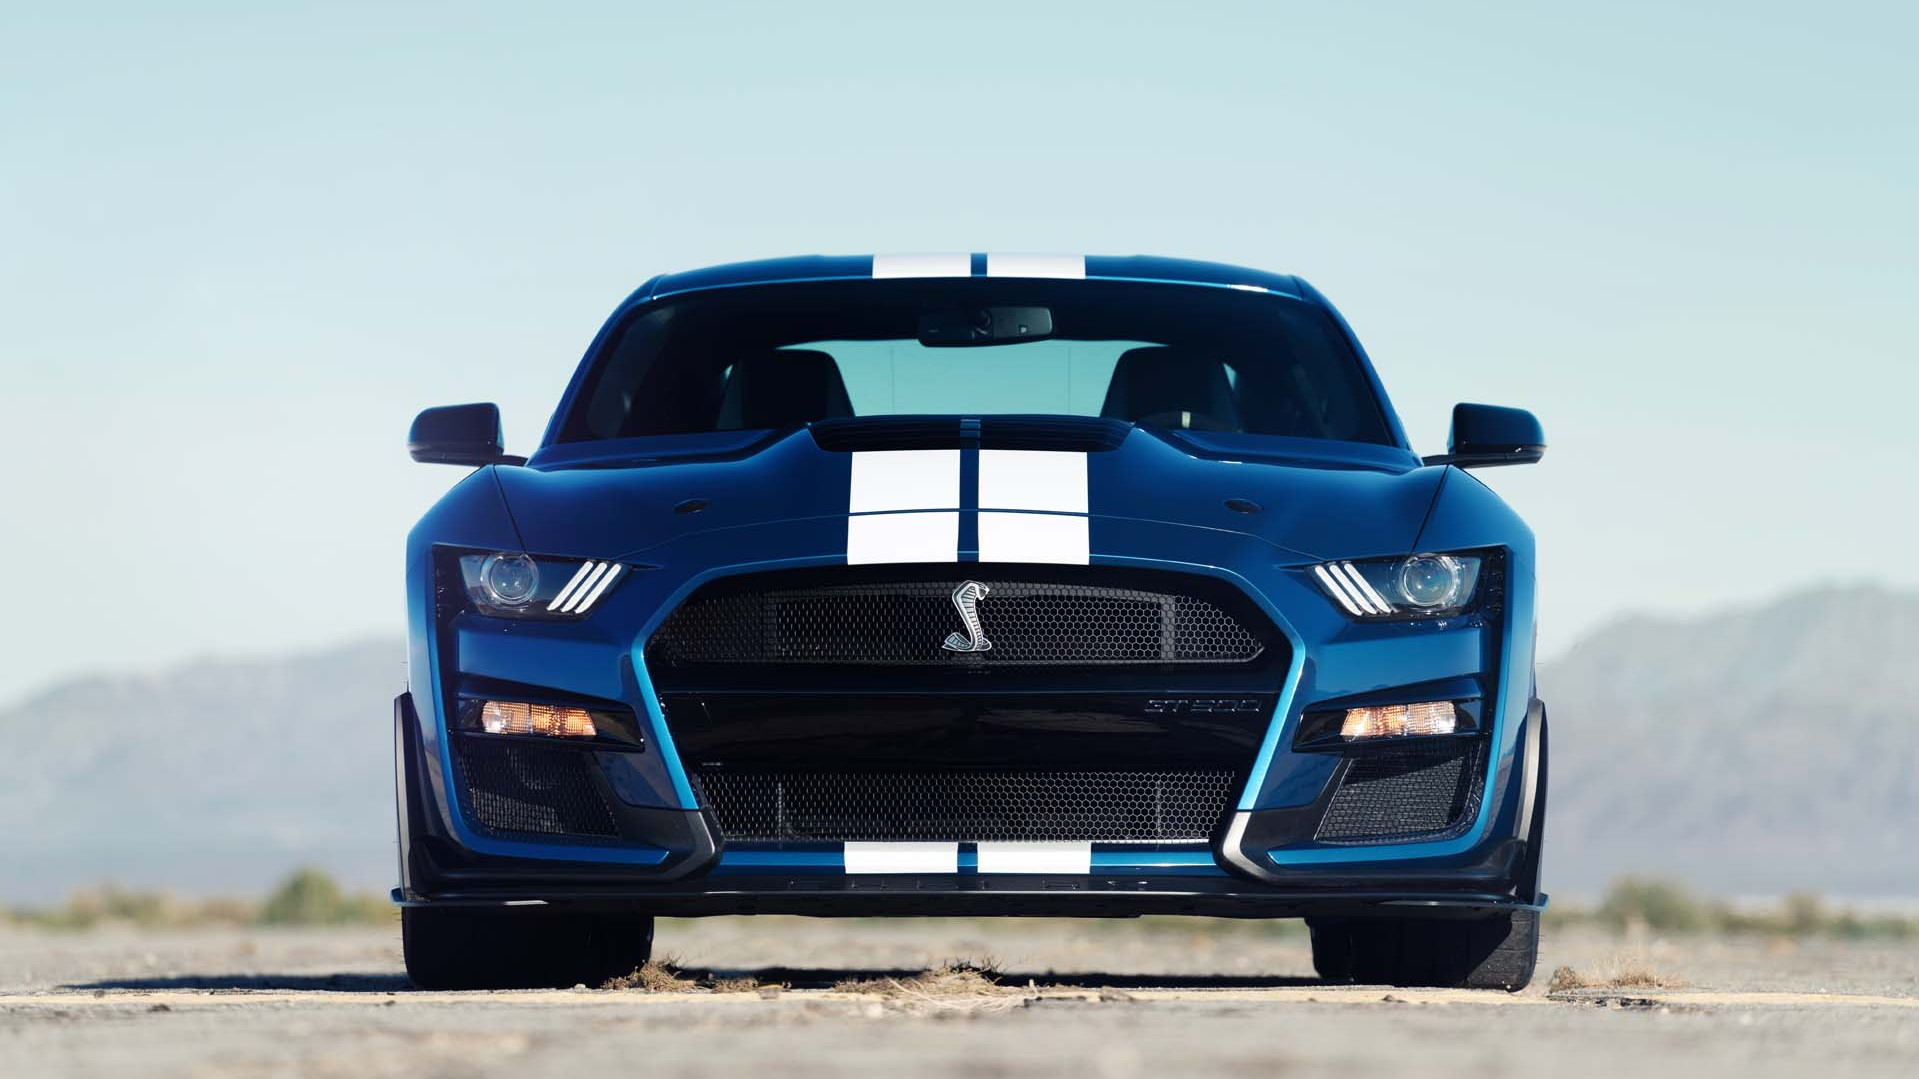 2020 Ford Mustang Shelby Gt500 Confirmed With 760